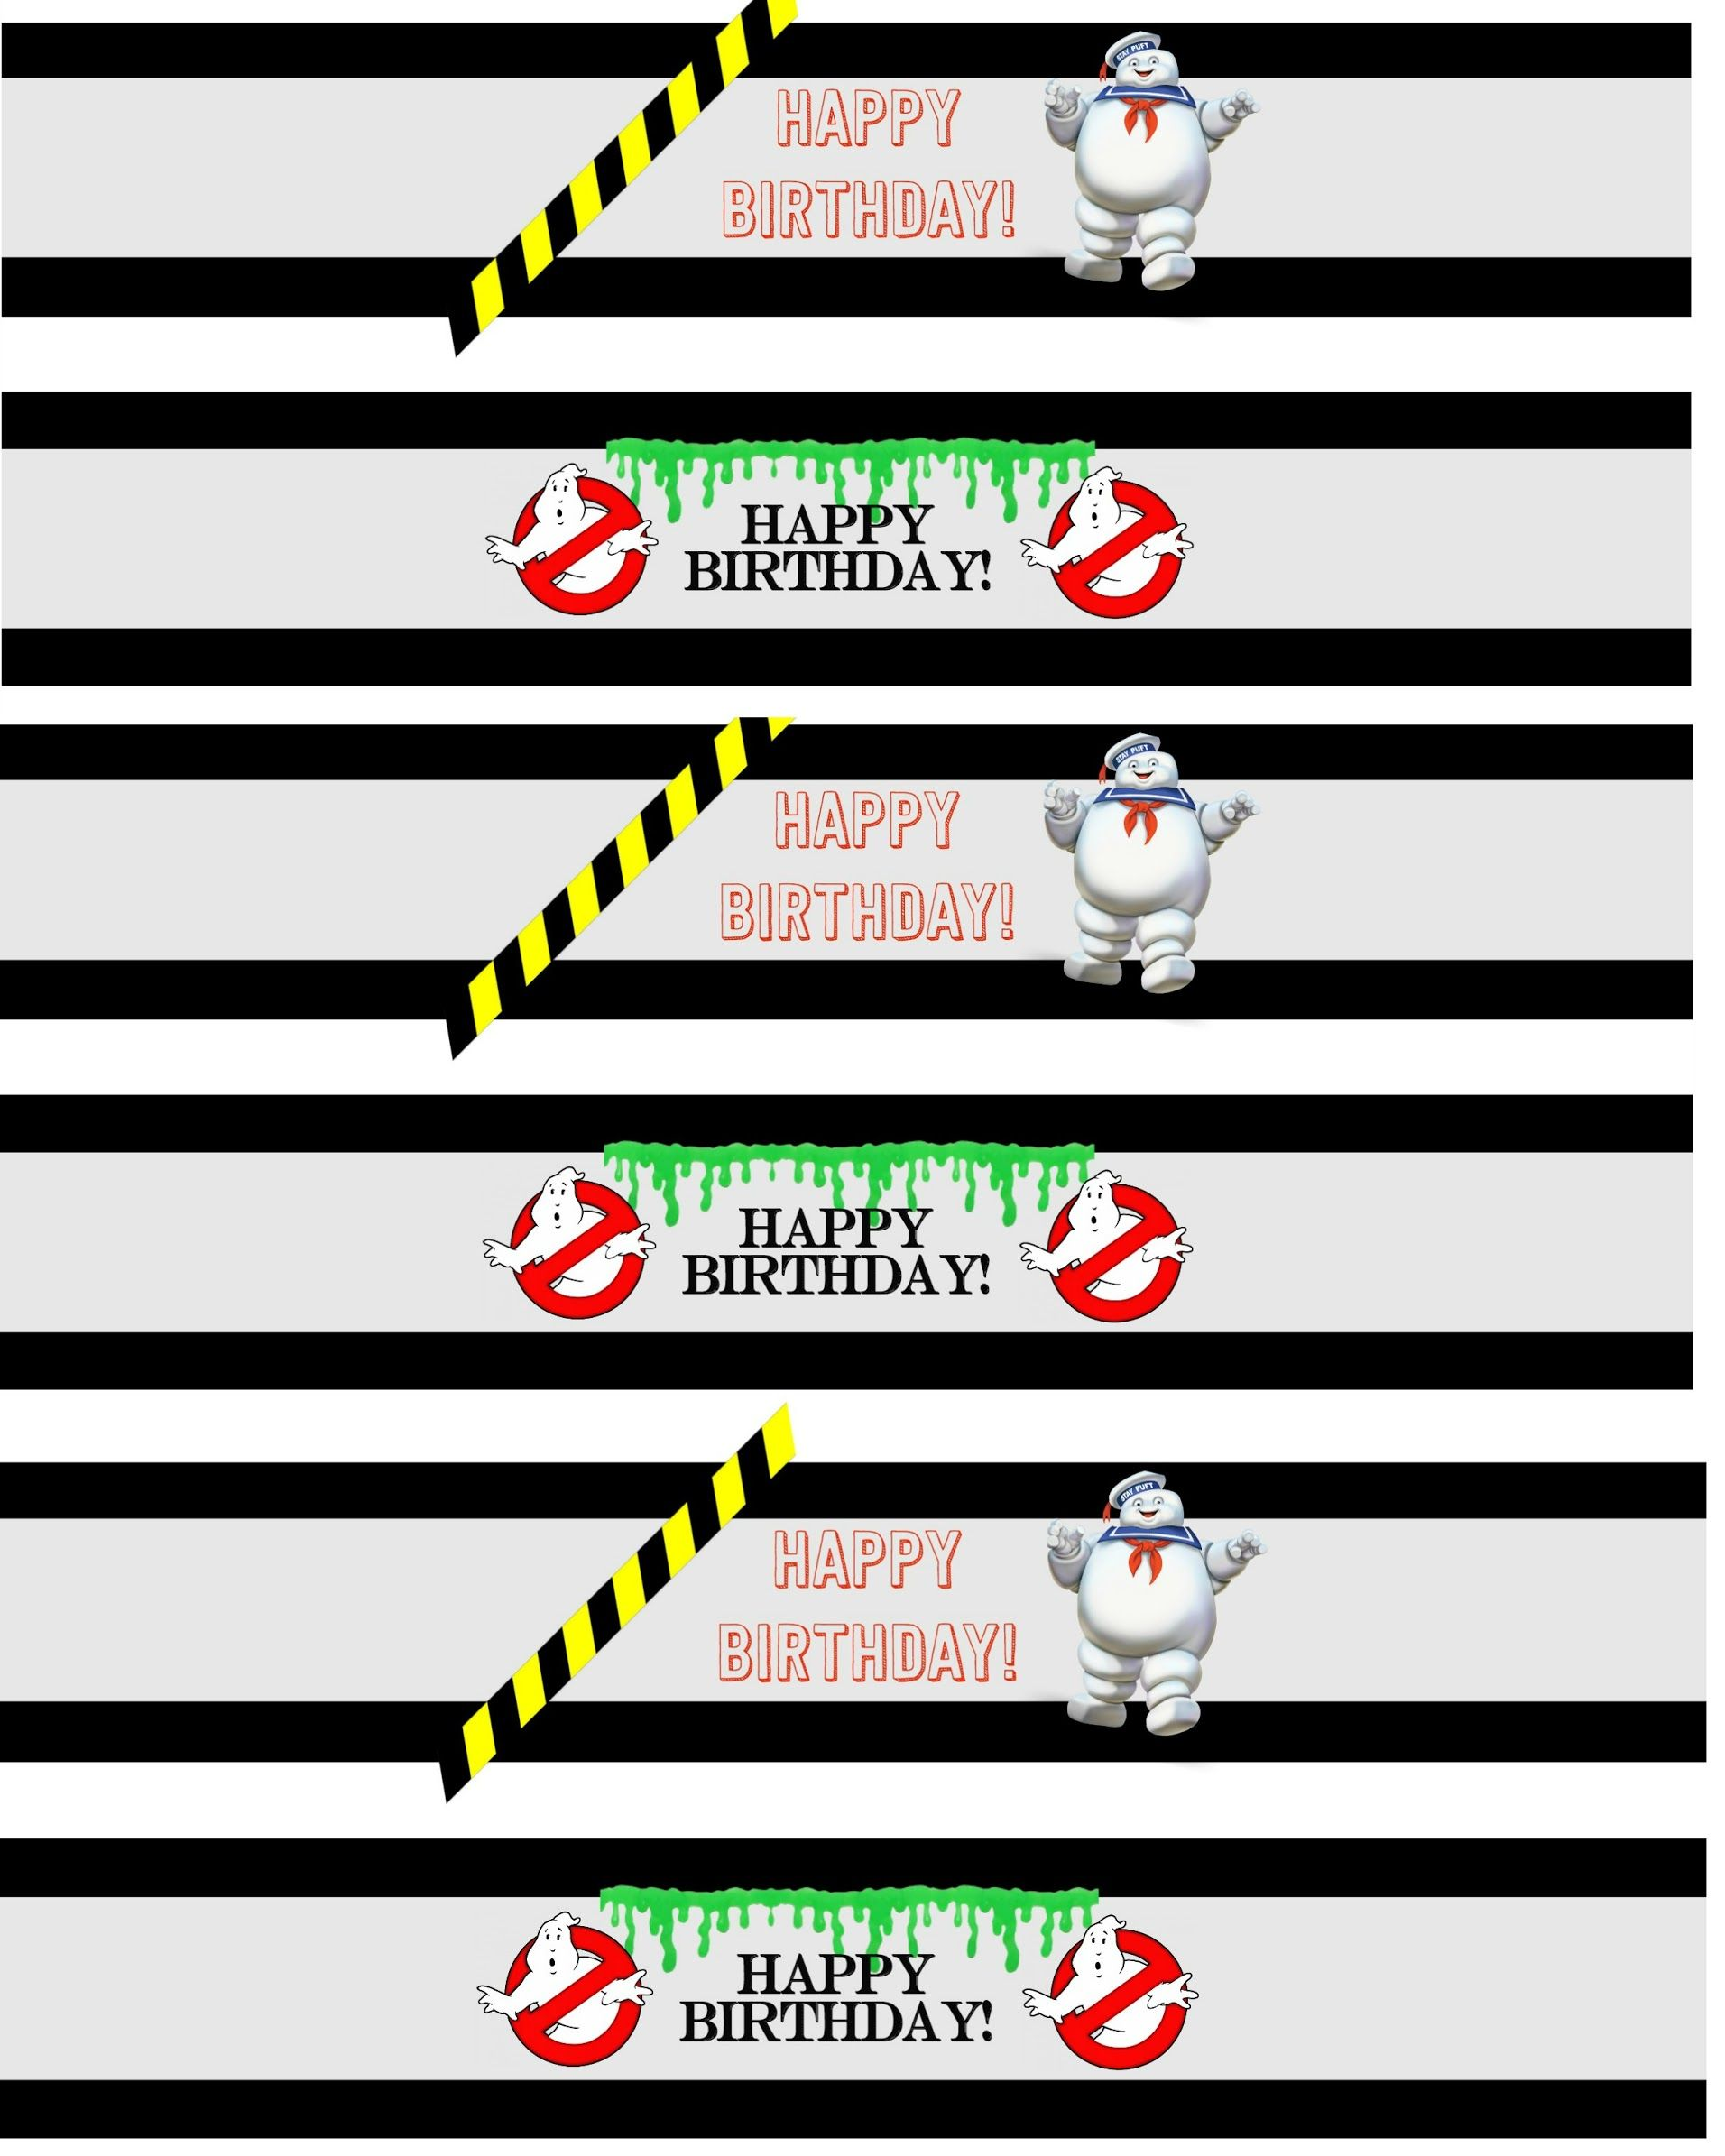 Displaying Drink labels.jpg Ghostbusters party